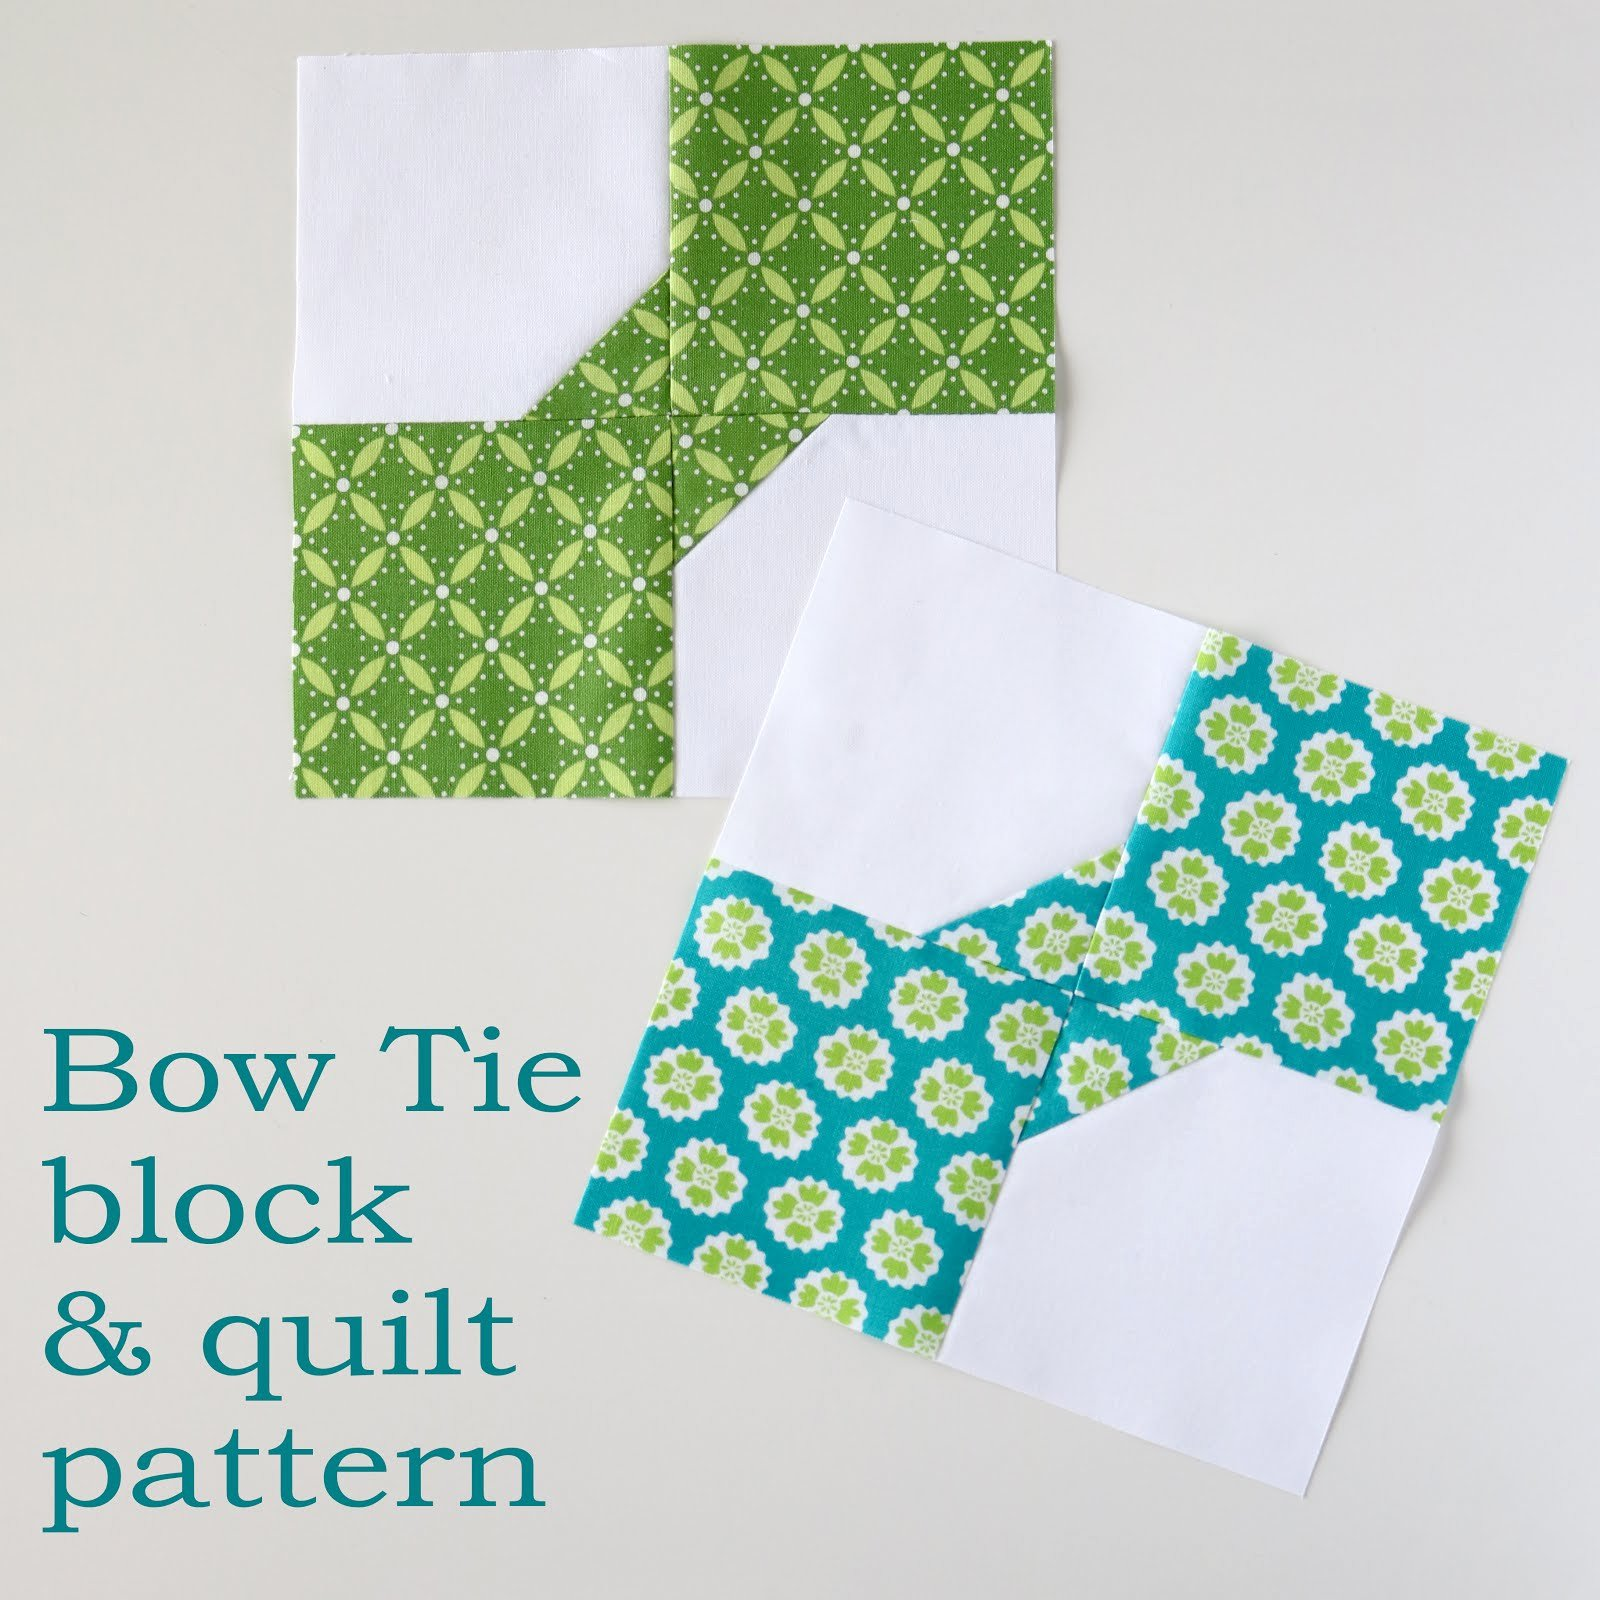 Bow Tie Patterns Elegant A Bright Corner A Bow Tie Quit